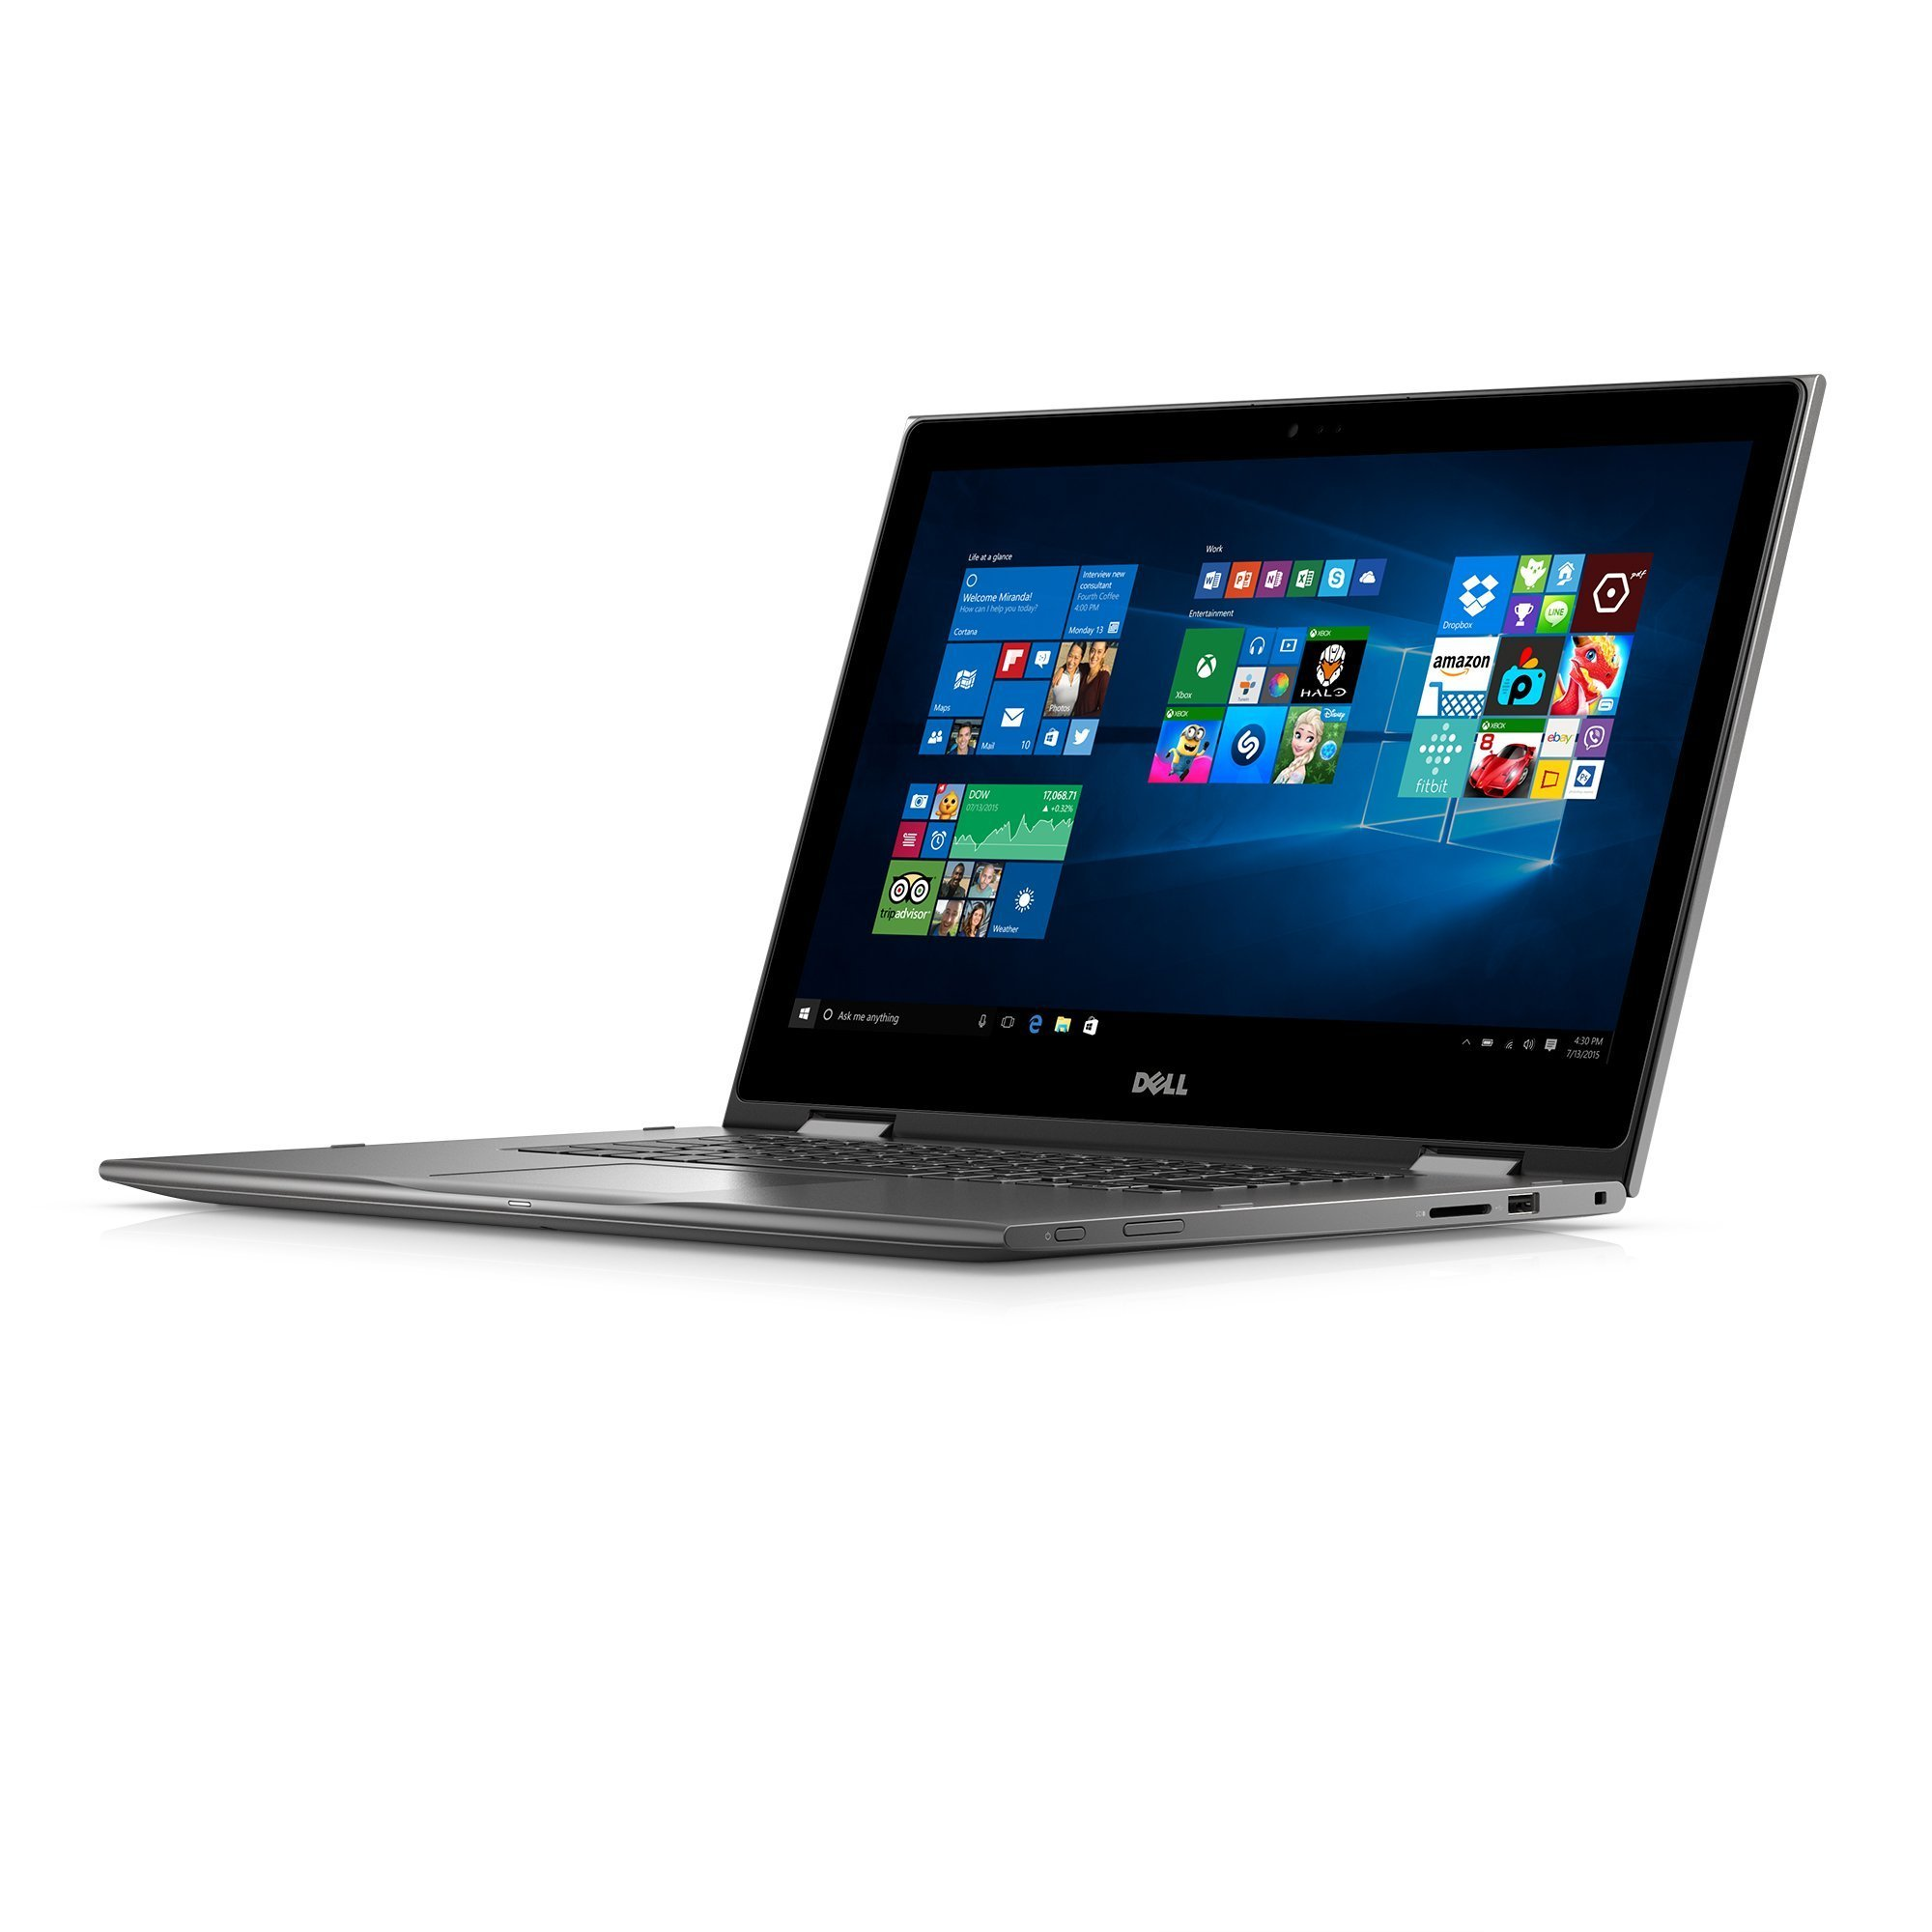 Dell i5568-0463GRY 15.6'' FHD 2-in-1 Laptop (Intel Core i3-6100U 2.3GHz Processor, 4 GB RAM, 500 GB HDD, Windows 10) Gray